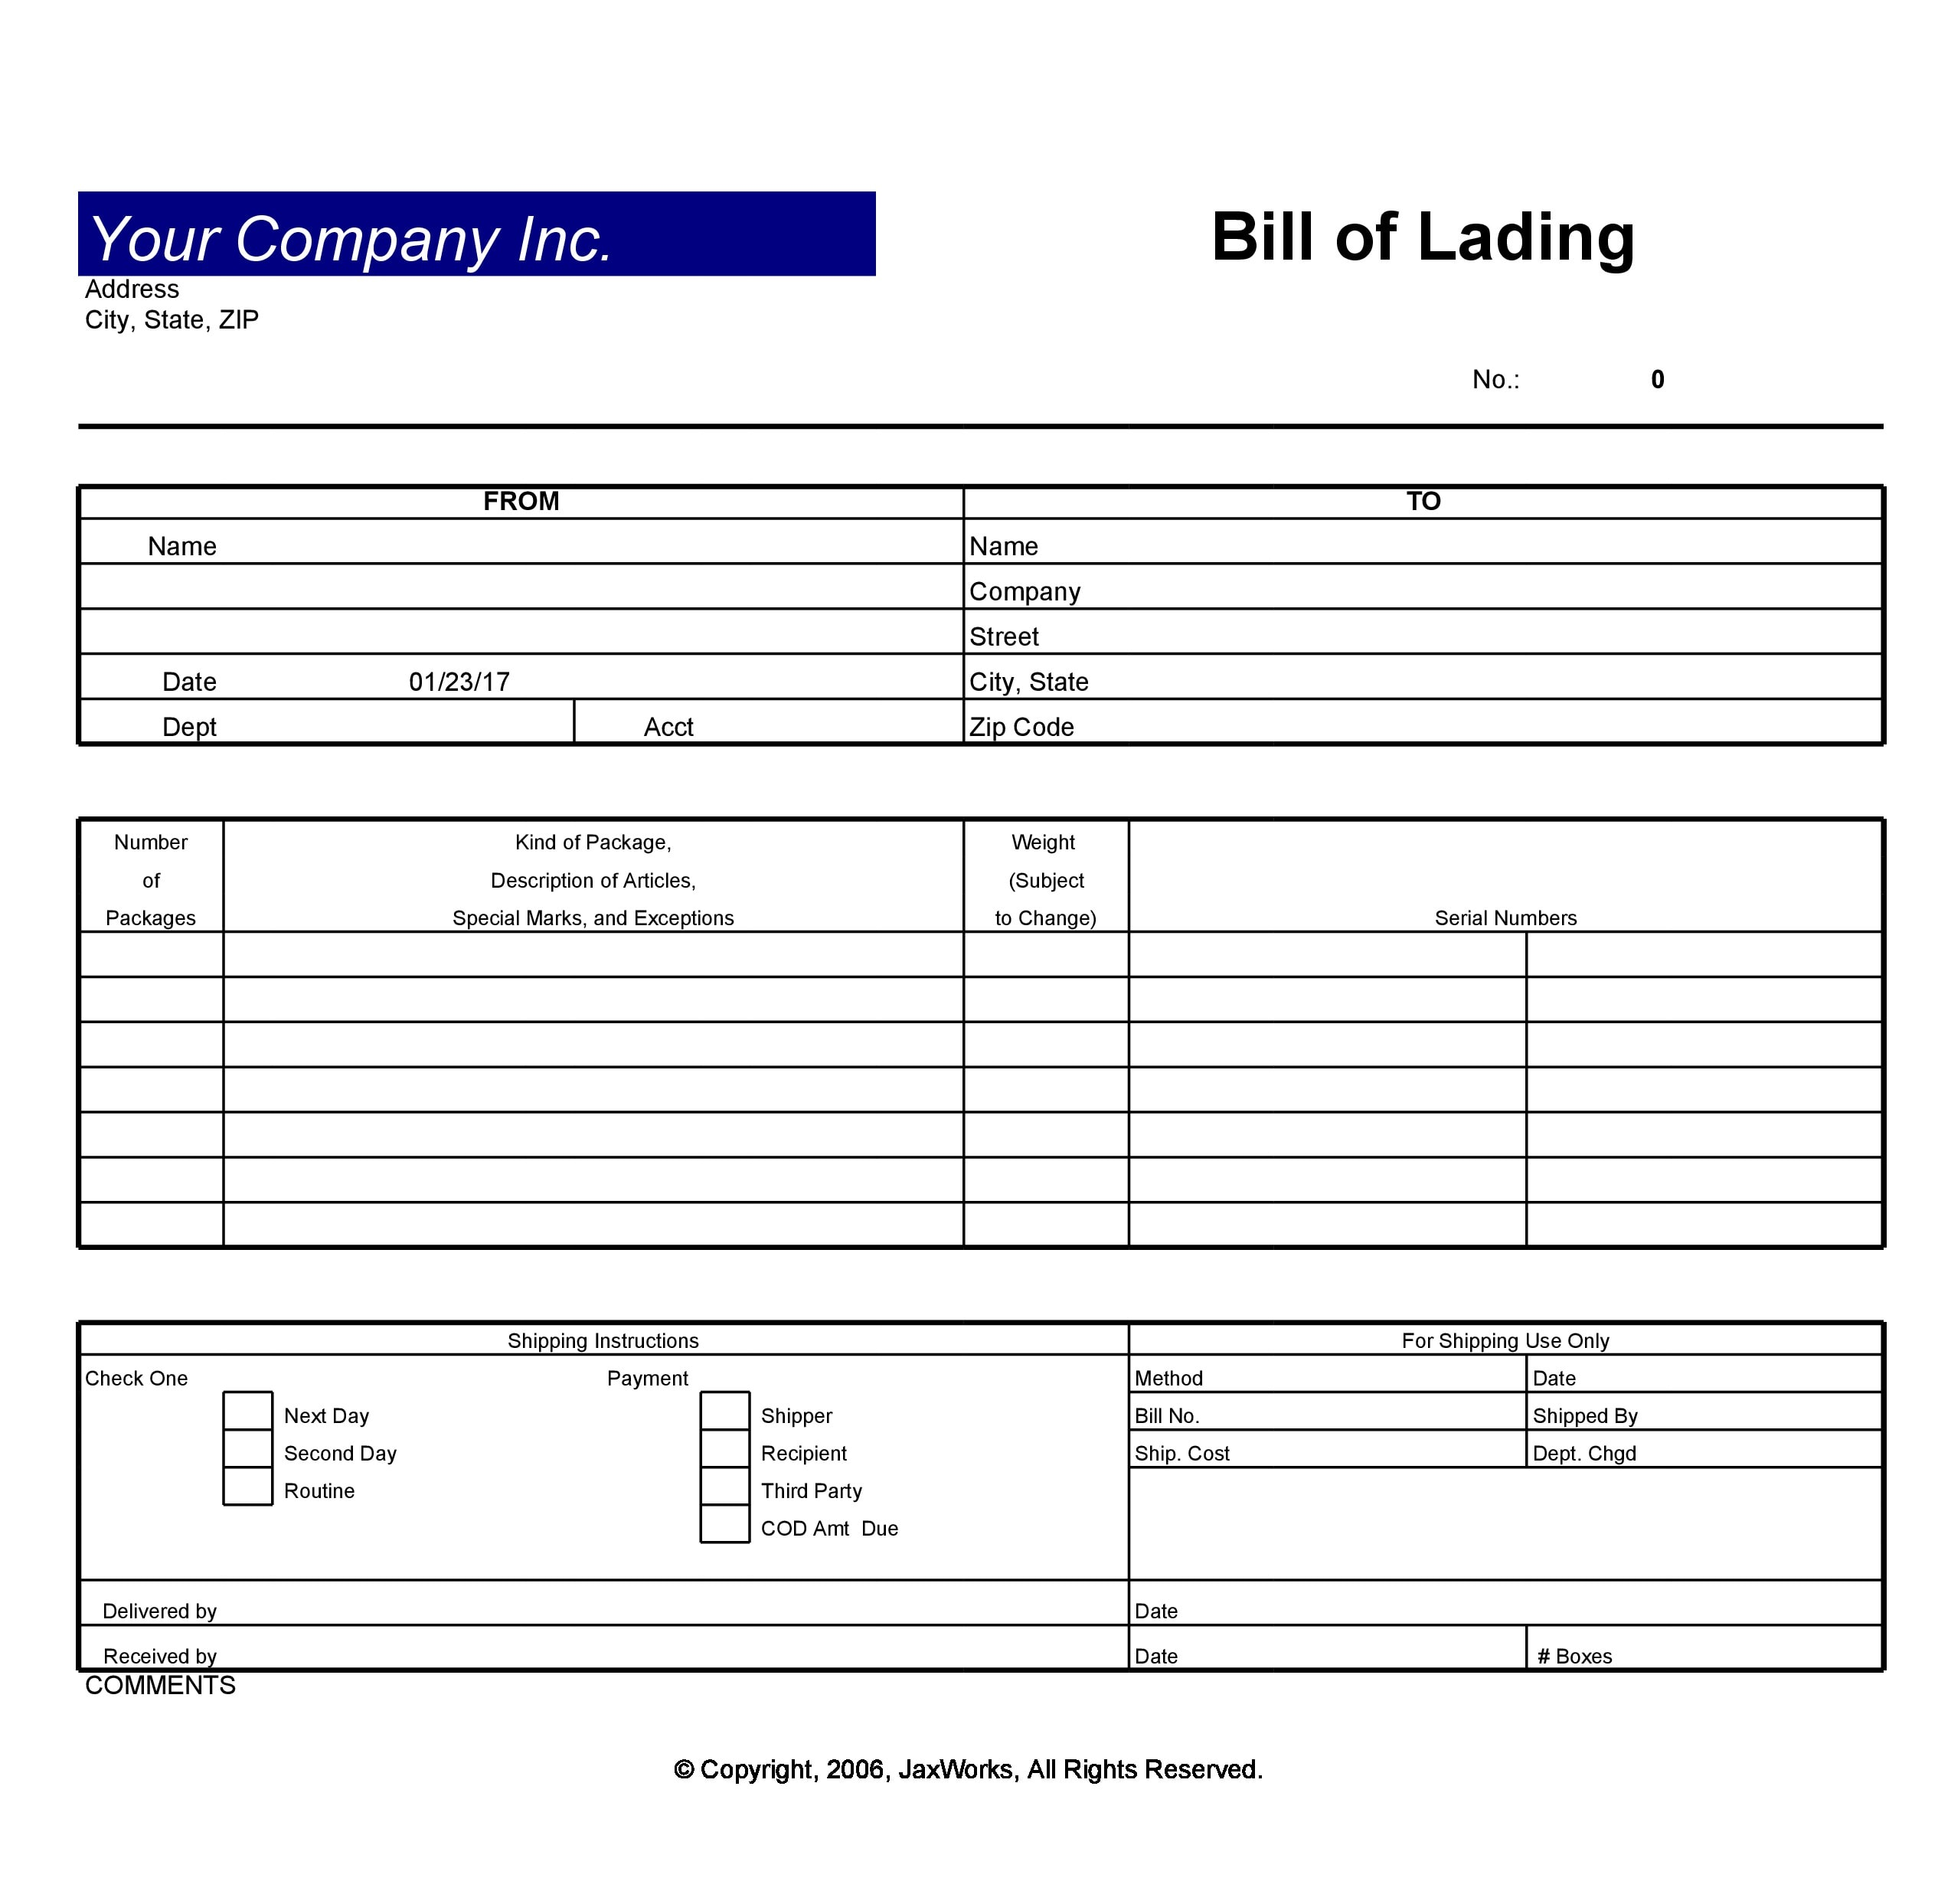 24 Blank Bill Of Lading Templates (24% FREE) - TemplateArchive With Blank Bol Template